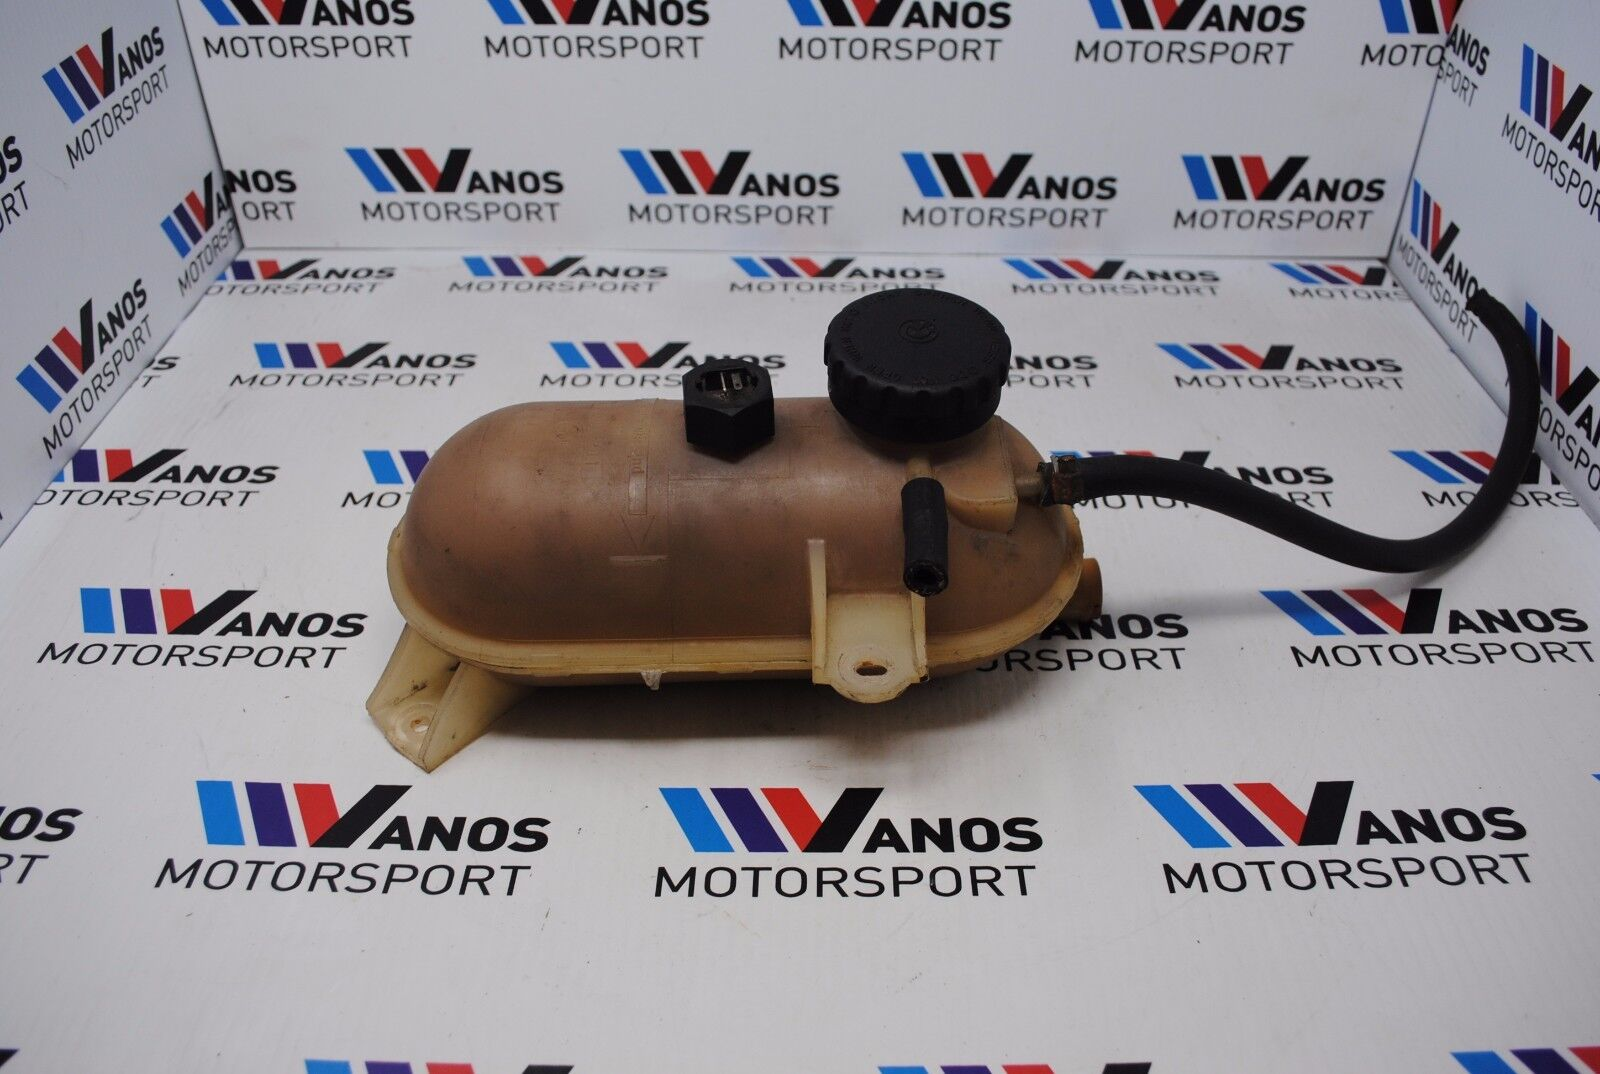 Used Bmw Cooling Systems For Sale Page 74 525i Coolant Expansion Tank E30 E28 325 525 Radiator Reservoir Bottle 1707540